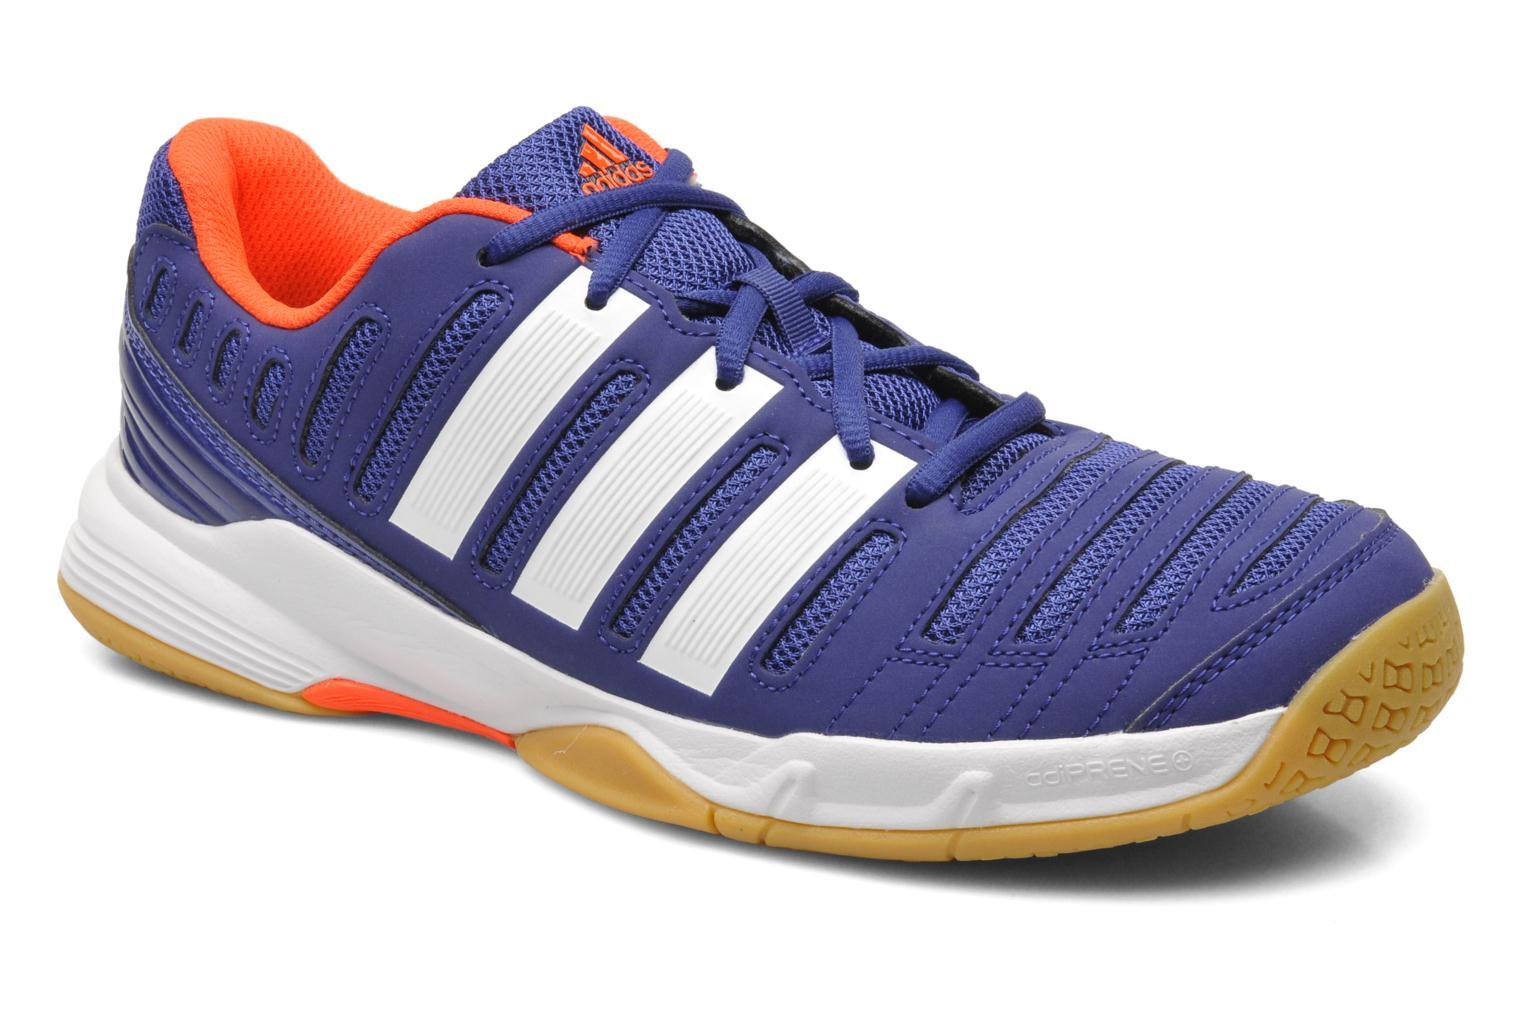 Adidas Essence 11 Court Shoes for Men c63caf3425ae7